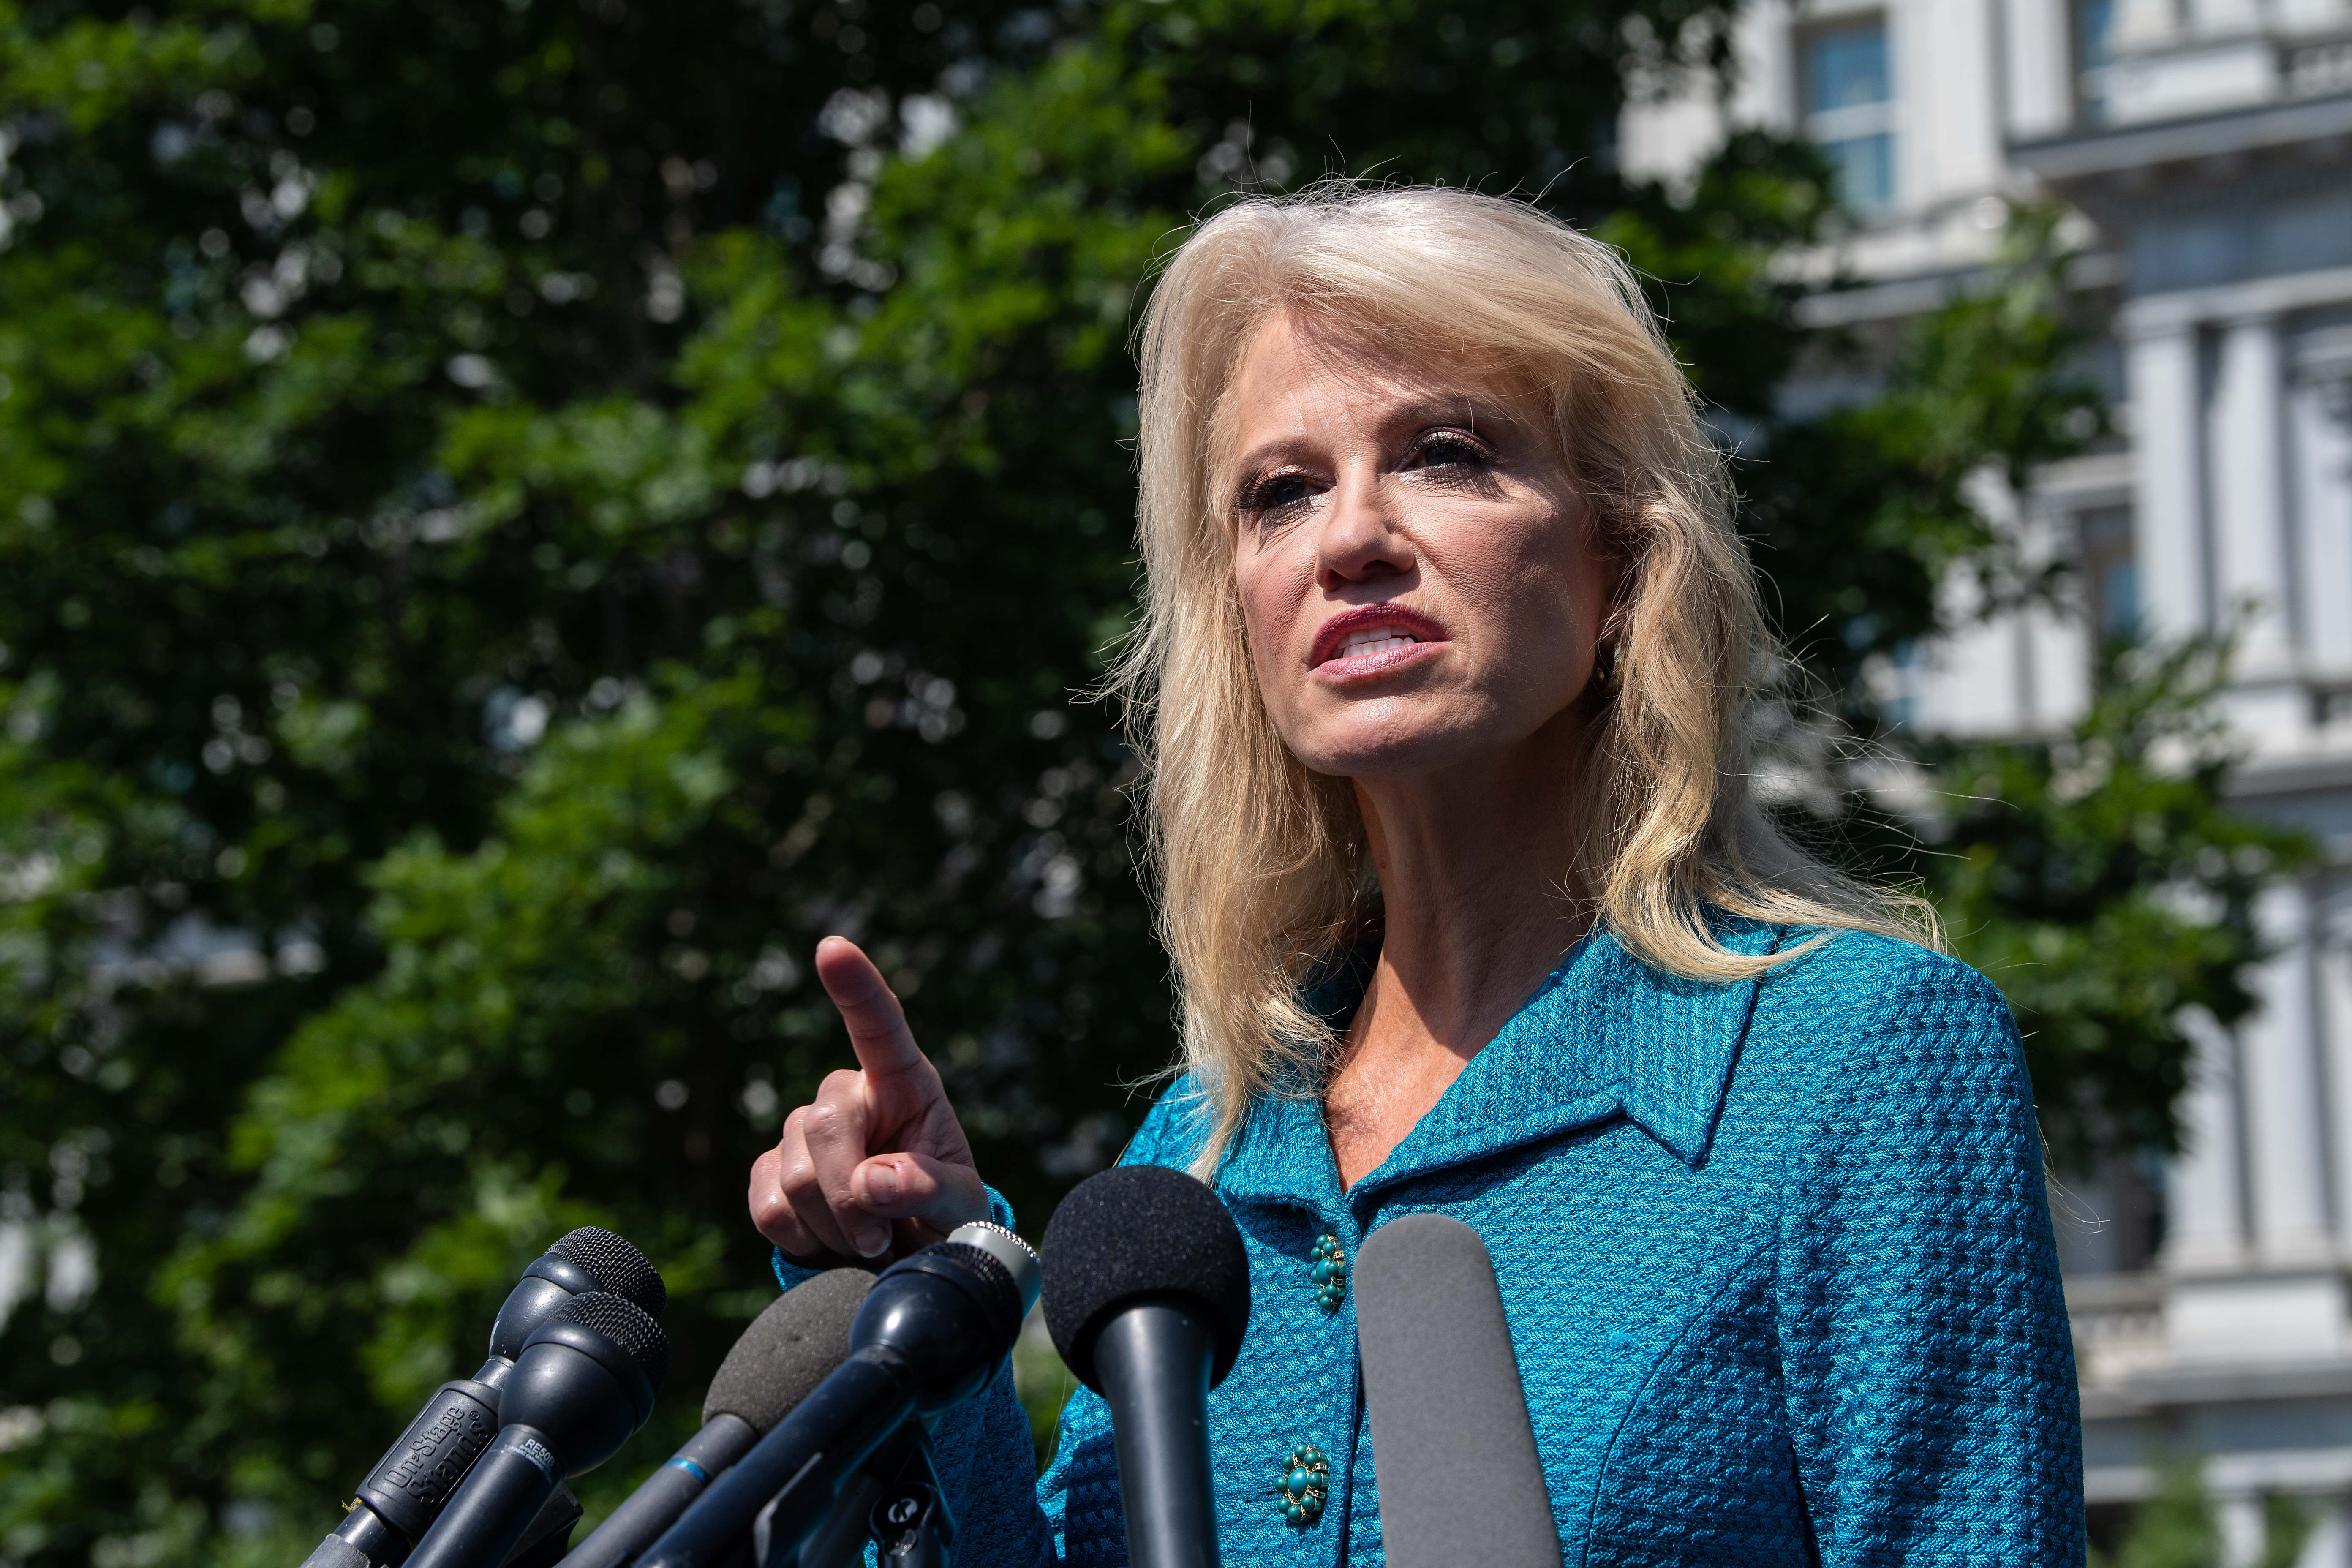 Keyllanne Conway says Trump administration ready to tap strategic petroleum reserve if necessary